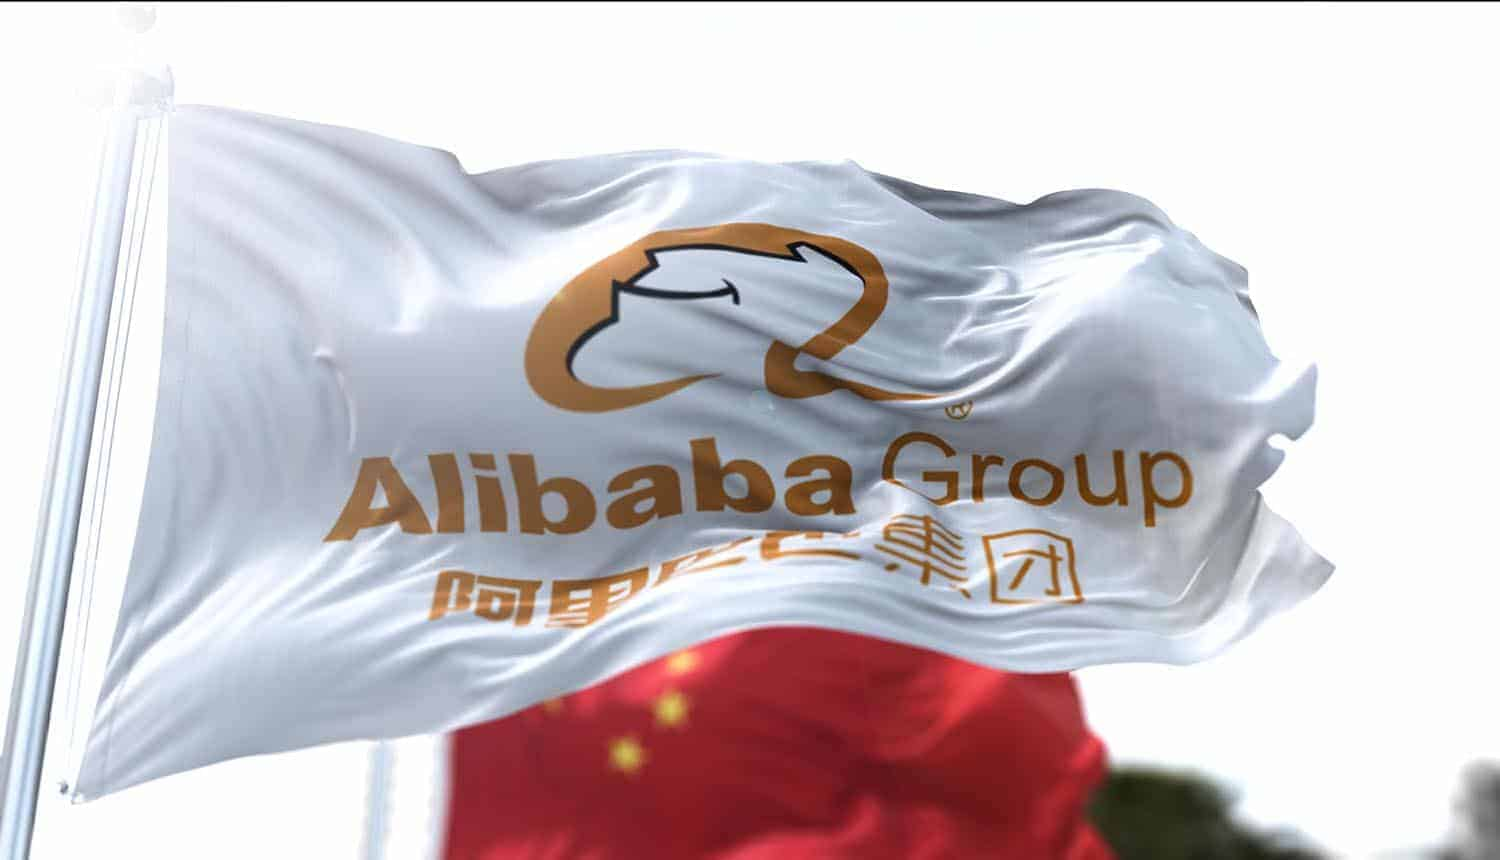 Flag with the Alibaba Group logo flying along with the national flag of China showing data protection rules aimed at tech giants